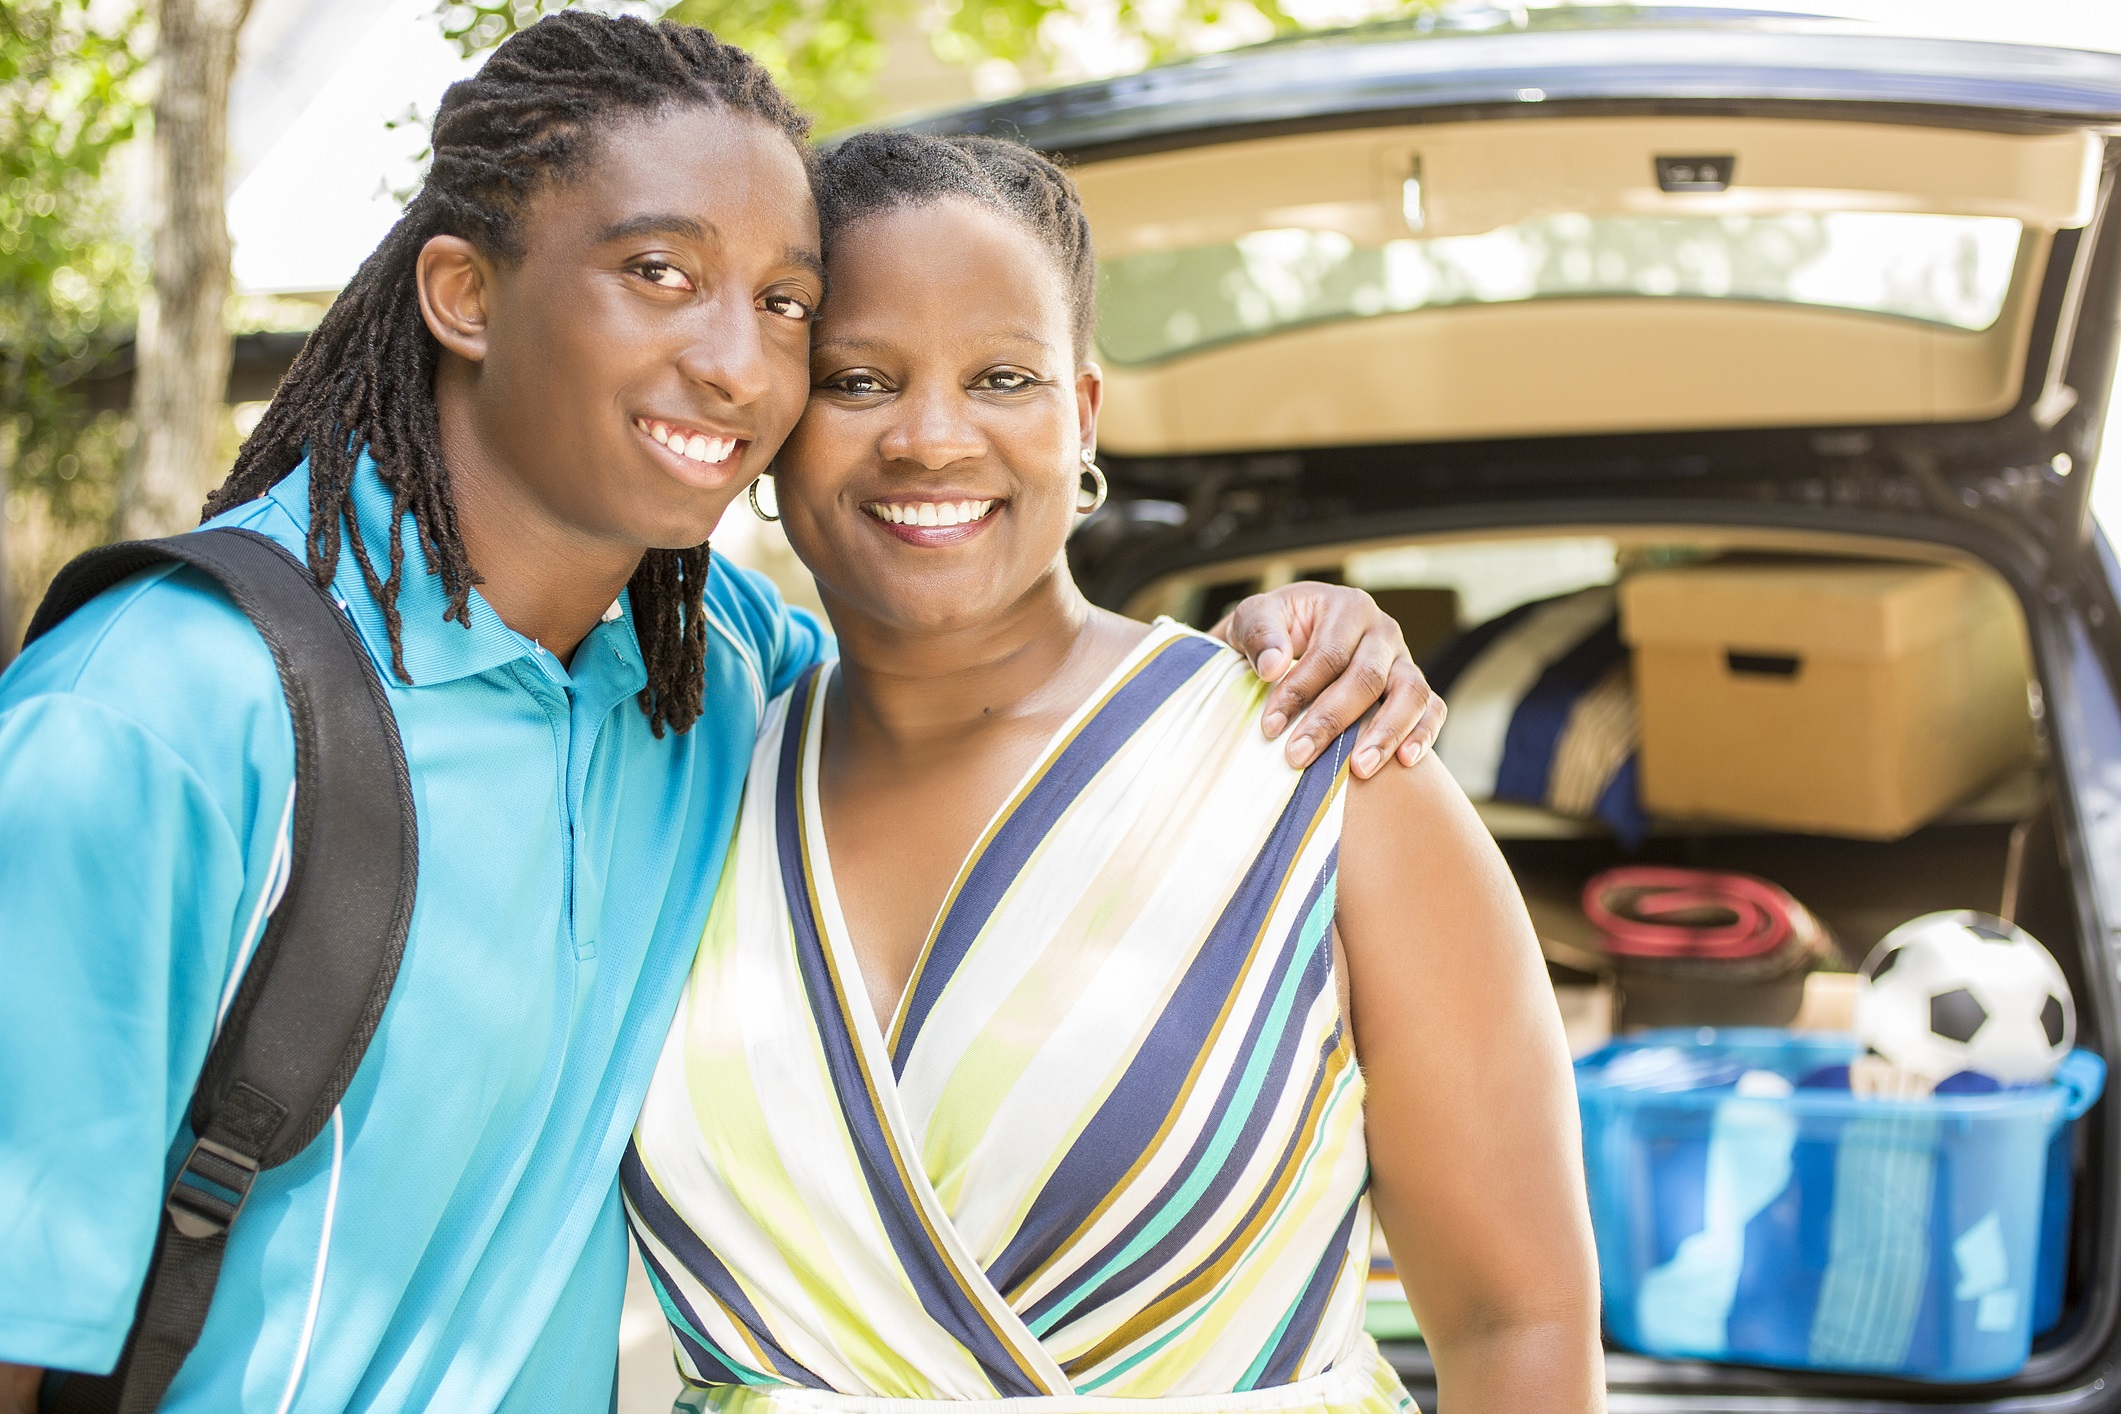 African descent boy heads off to college or moves away from home. The 18-year-olds' mother is helping him pack up his car as he gets ready for the big move. He is excited to start his college adventures and gives mom a big hug. He wears a backpack. Family events. Back to school.